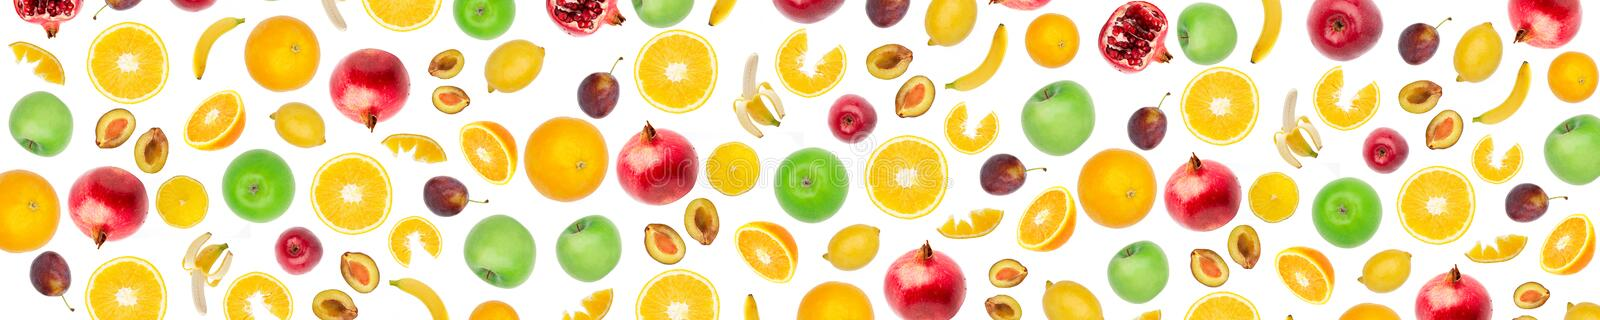 Wide panoramic collage fresh fruit isolated on white background vector illustration